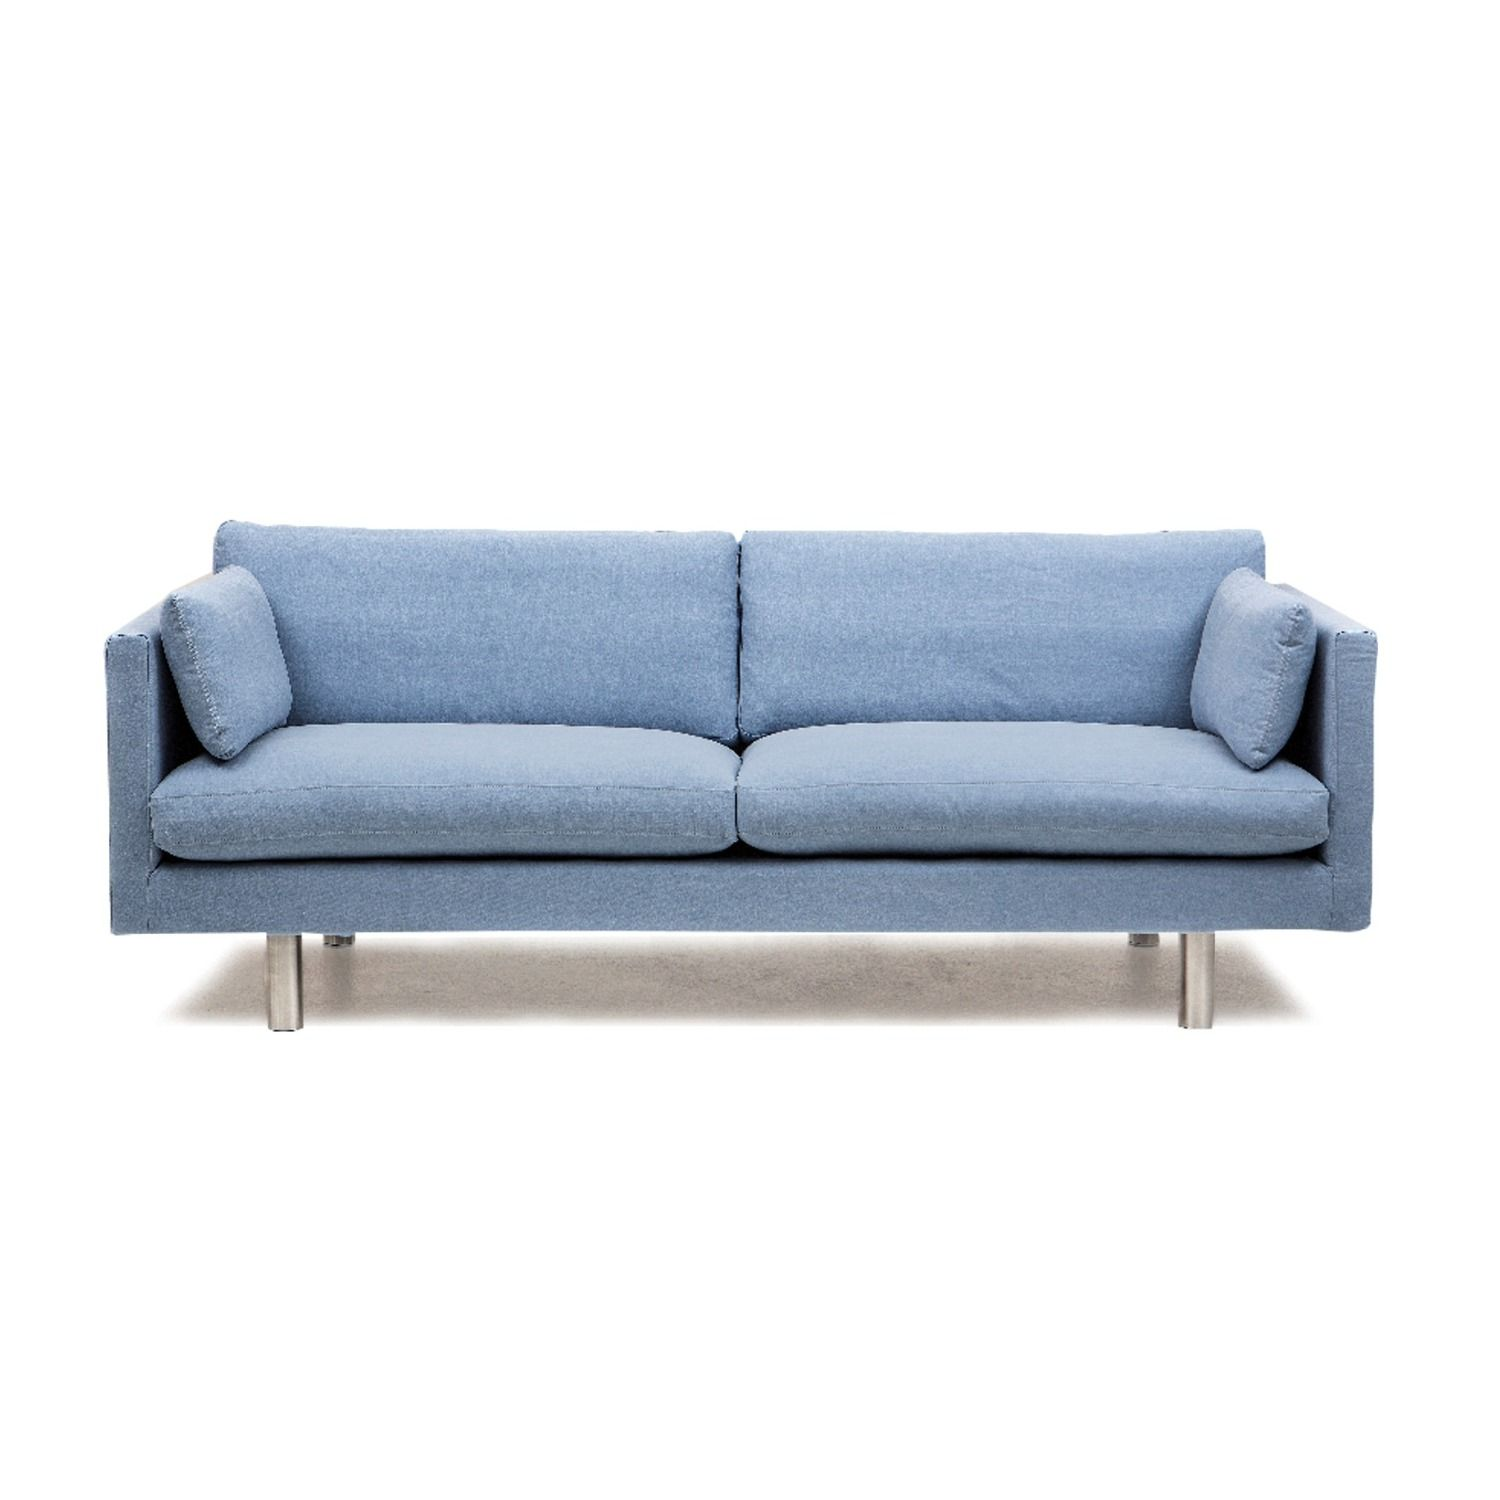 Picture of: Classic Sofa Kob Online Olsson Mobler